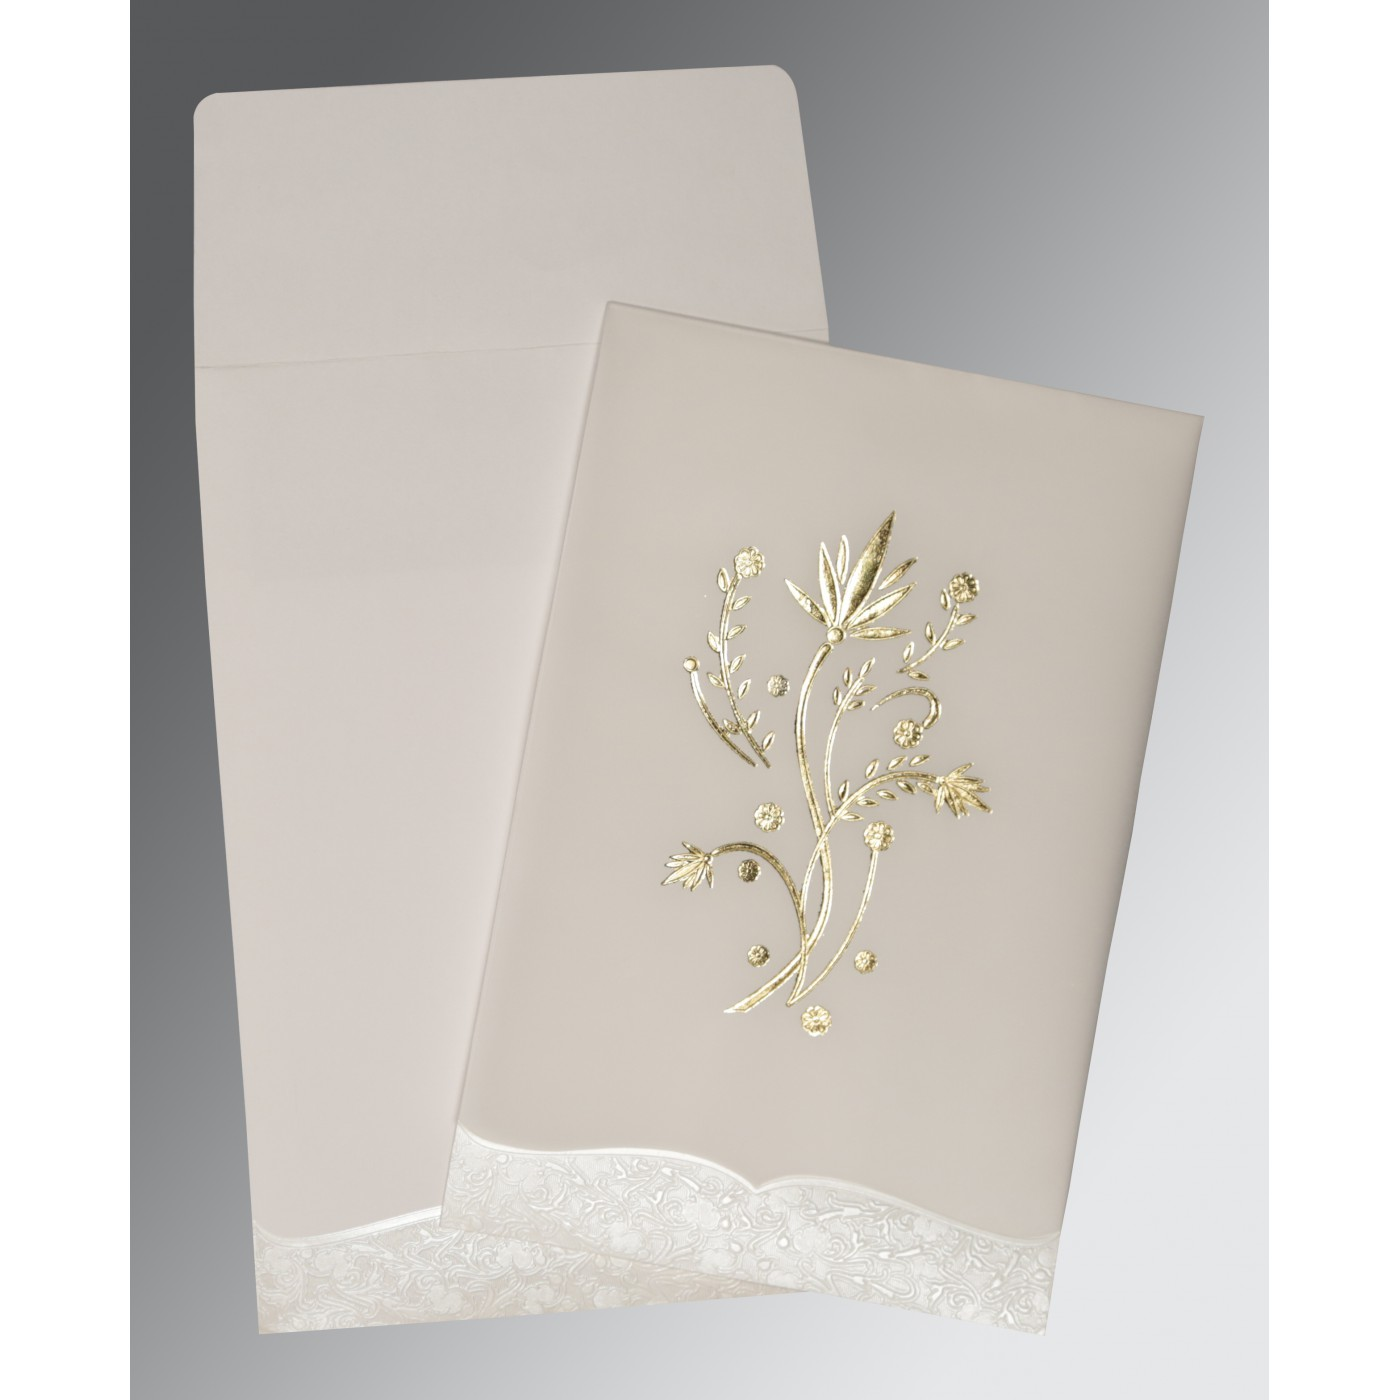 OFF-WHITE FLORAL THEMED - FOIL STAMPED WEDDING CARD : AI-1495 - A2zWeddingCards